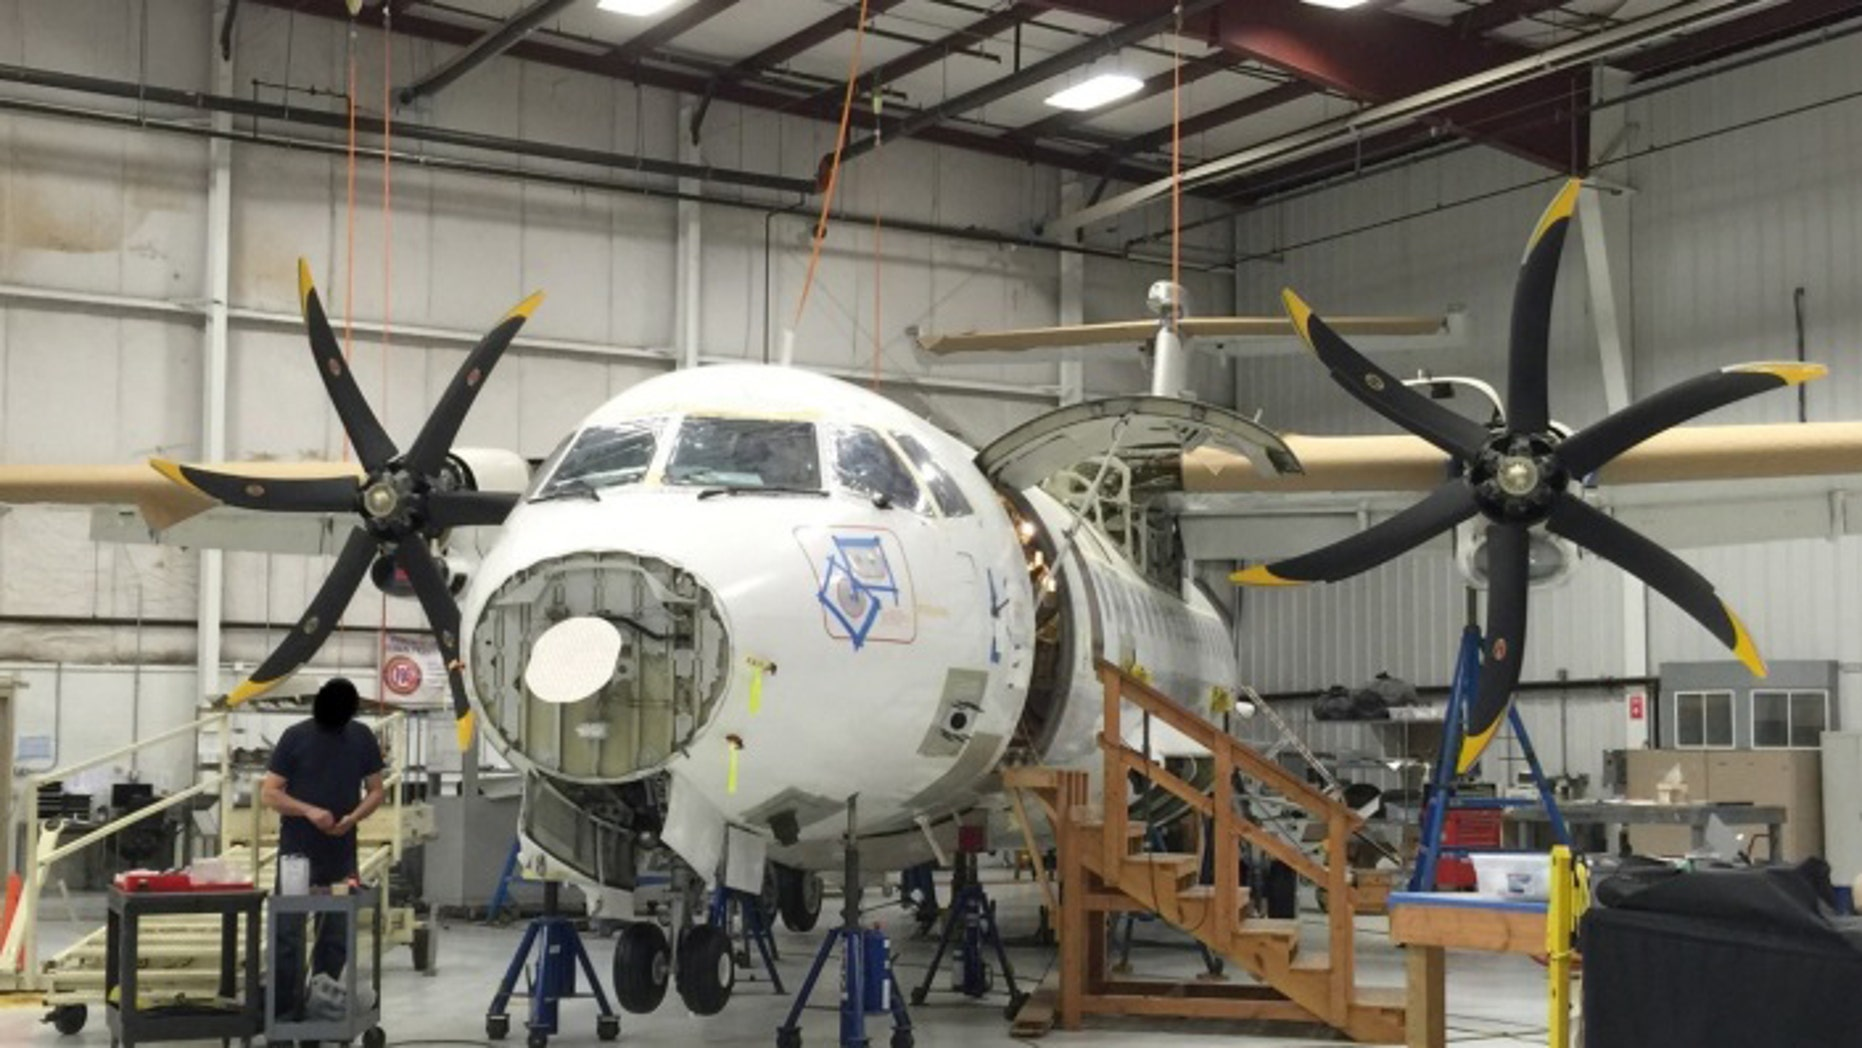 This photo provided by the Justice Department, taken in April 2015, shows a Drug Enforcement Agency (DEA) ATR 42-500 at the Defense Department's subcontractor's facility. A specialized plane at the DEA to fly missions in Afghanistan that has cost taxpayers $86 million has remained grounded for seven years. The Justice Department inspector general issued a scathing audit Wednesday, March 30, 2016, spurred by a July 2014 whistleblower's report. (Justice Department via AP)